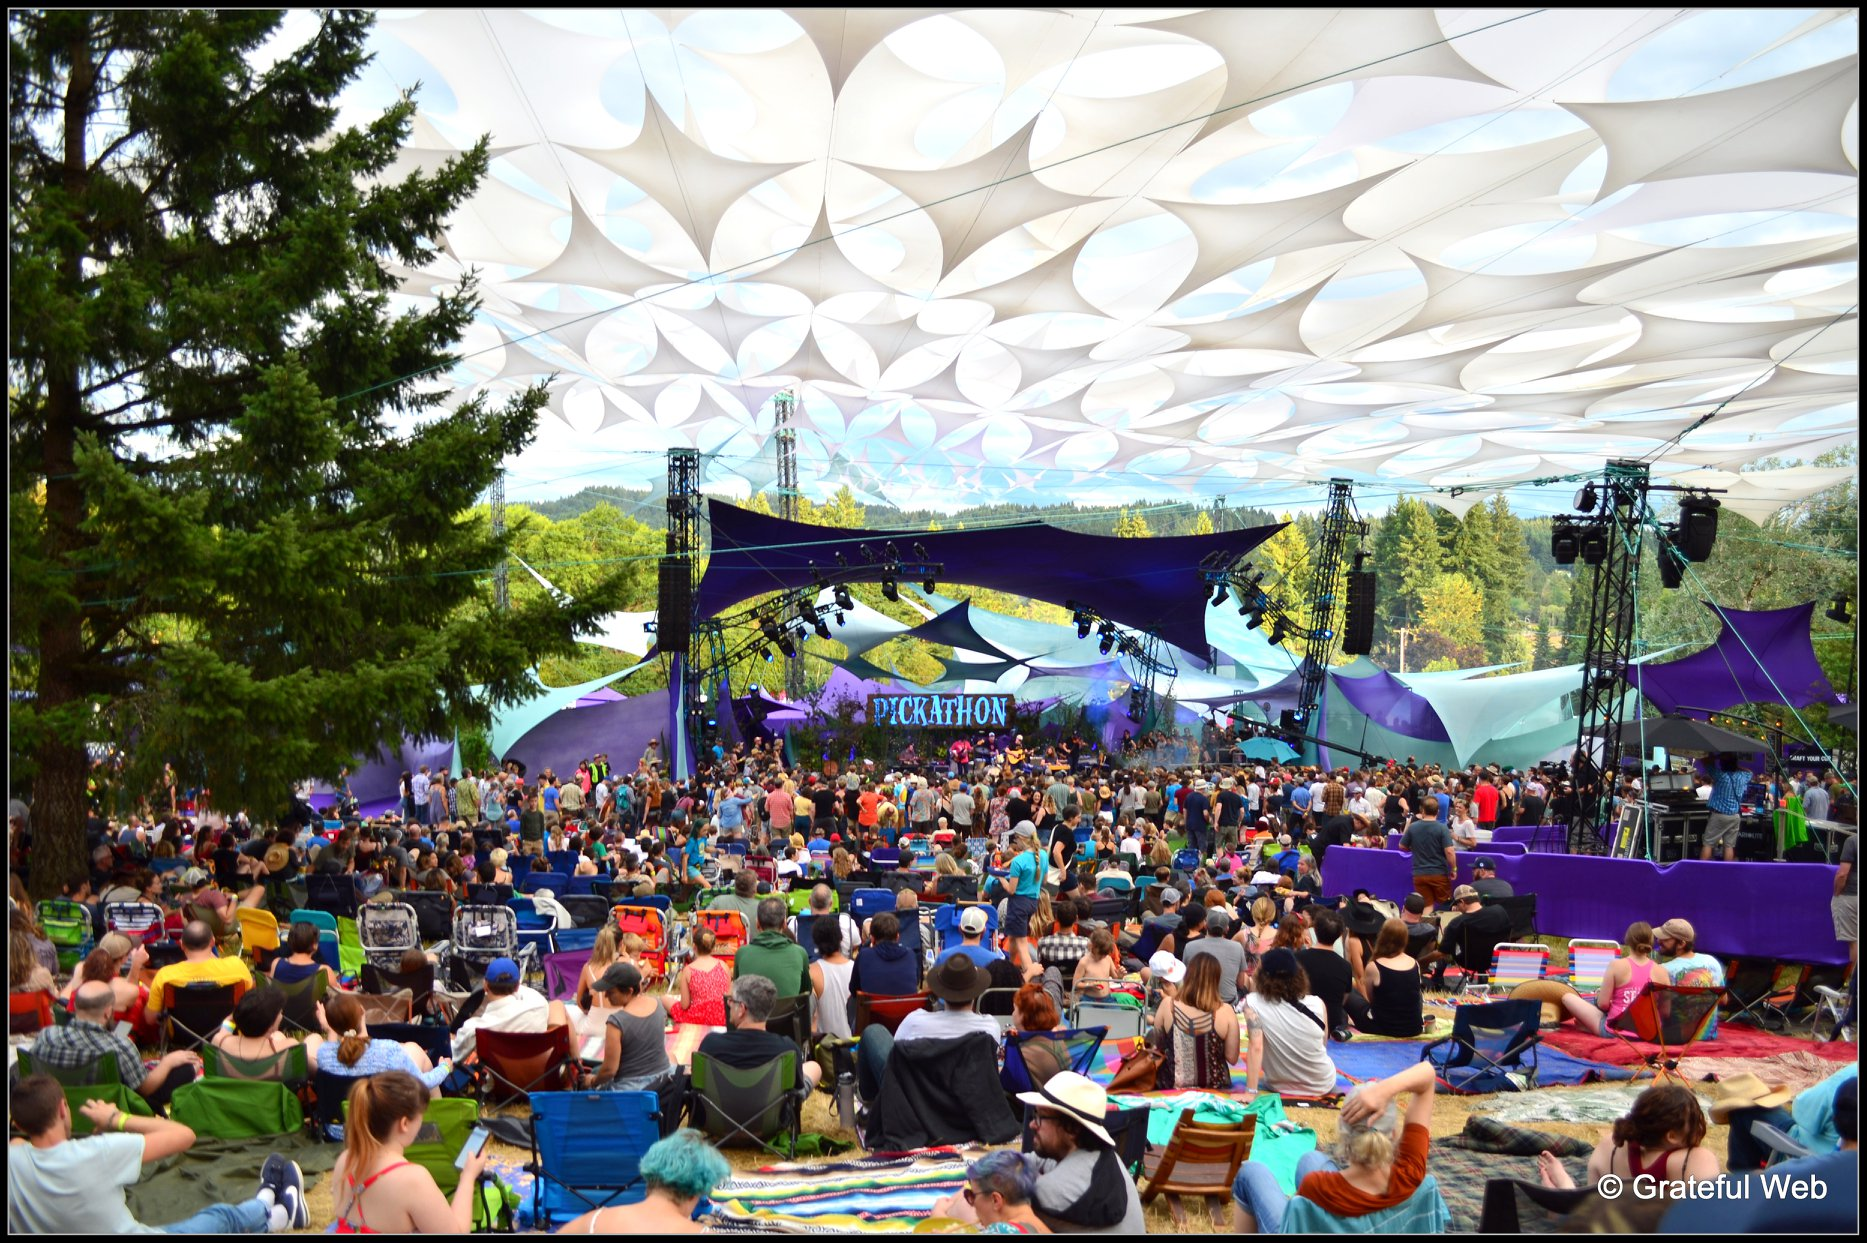 Pickathon 2019 | Recap & Photos